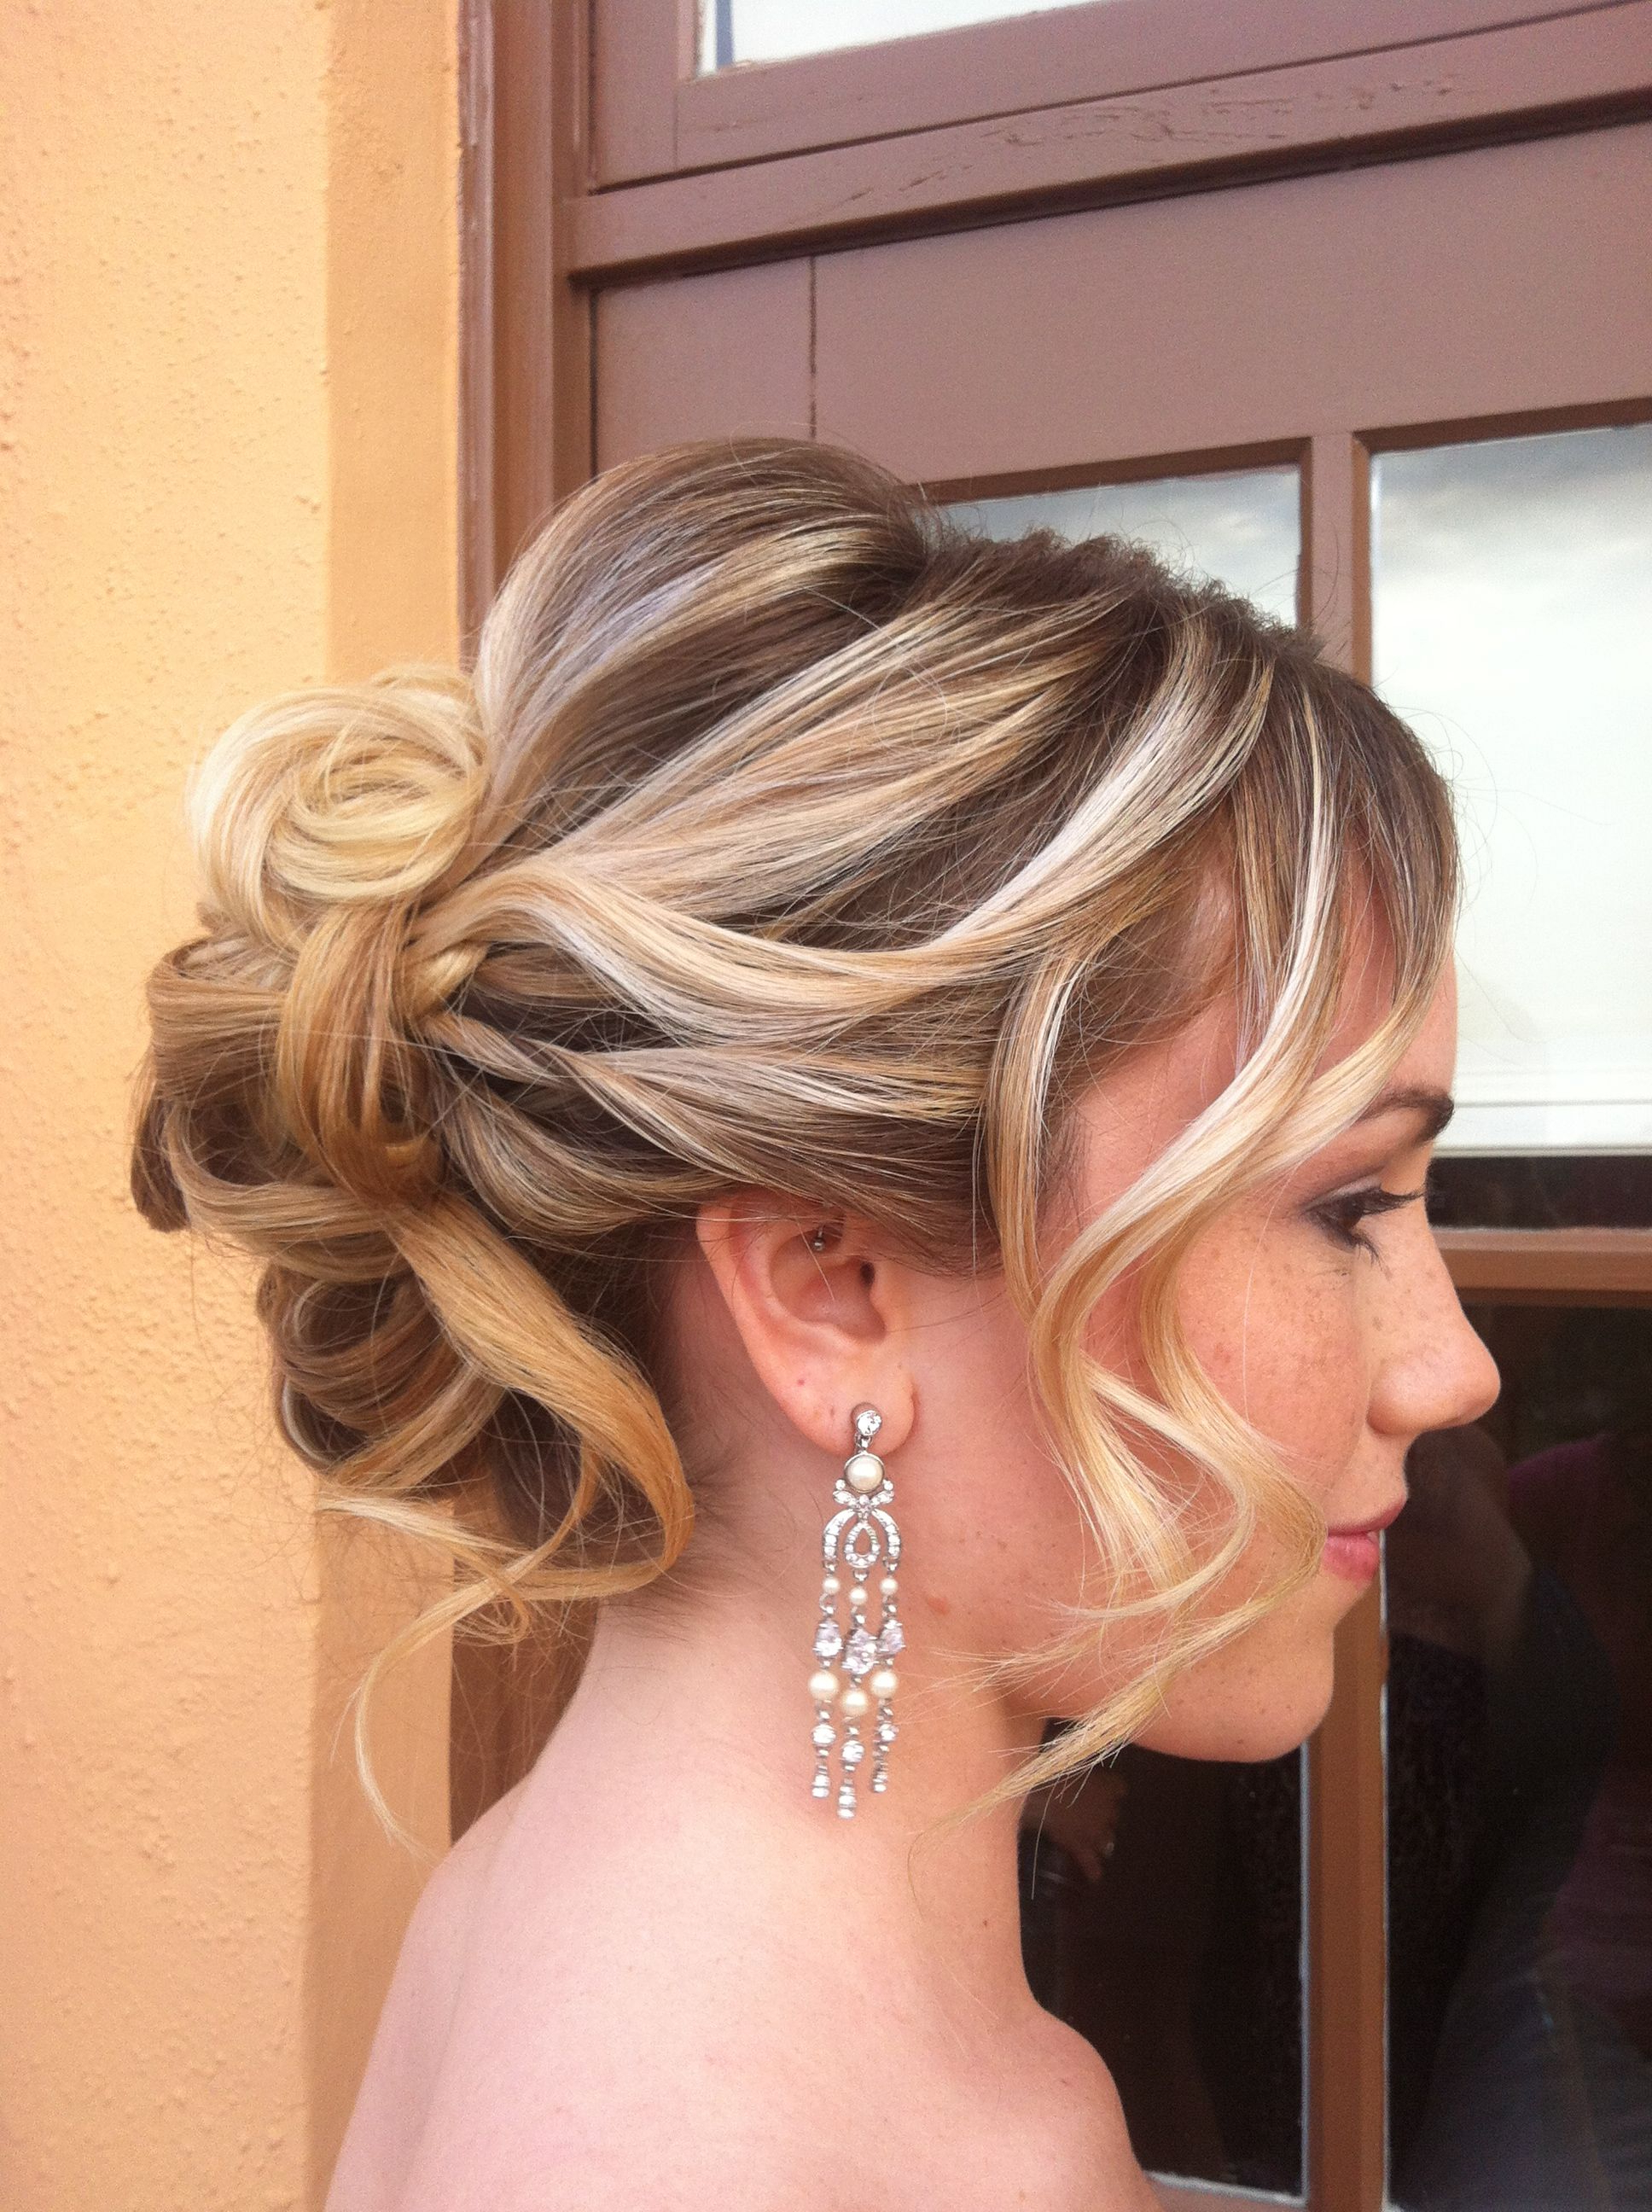 Tousled Updo Hairjanet Makeup Brittany South Beach Makeup Studio Pertaining To 2018 Tousled Asymmetrical Updo Wedding Hairstyles (View 16 of 20)